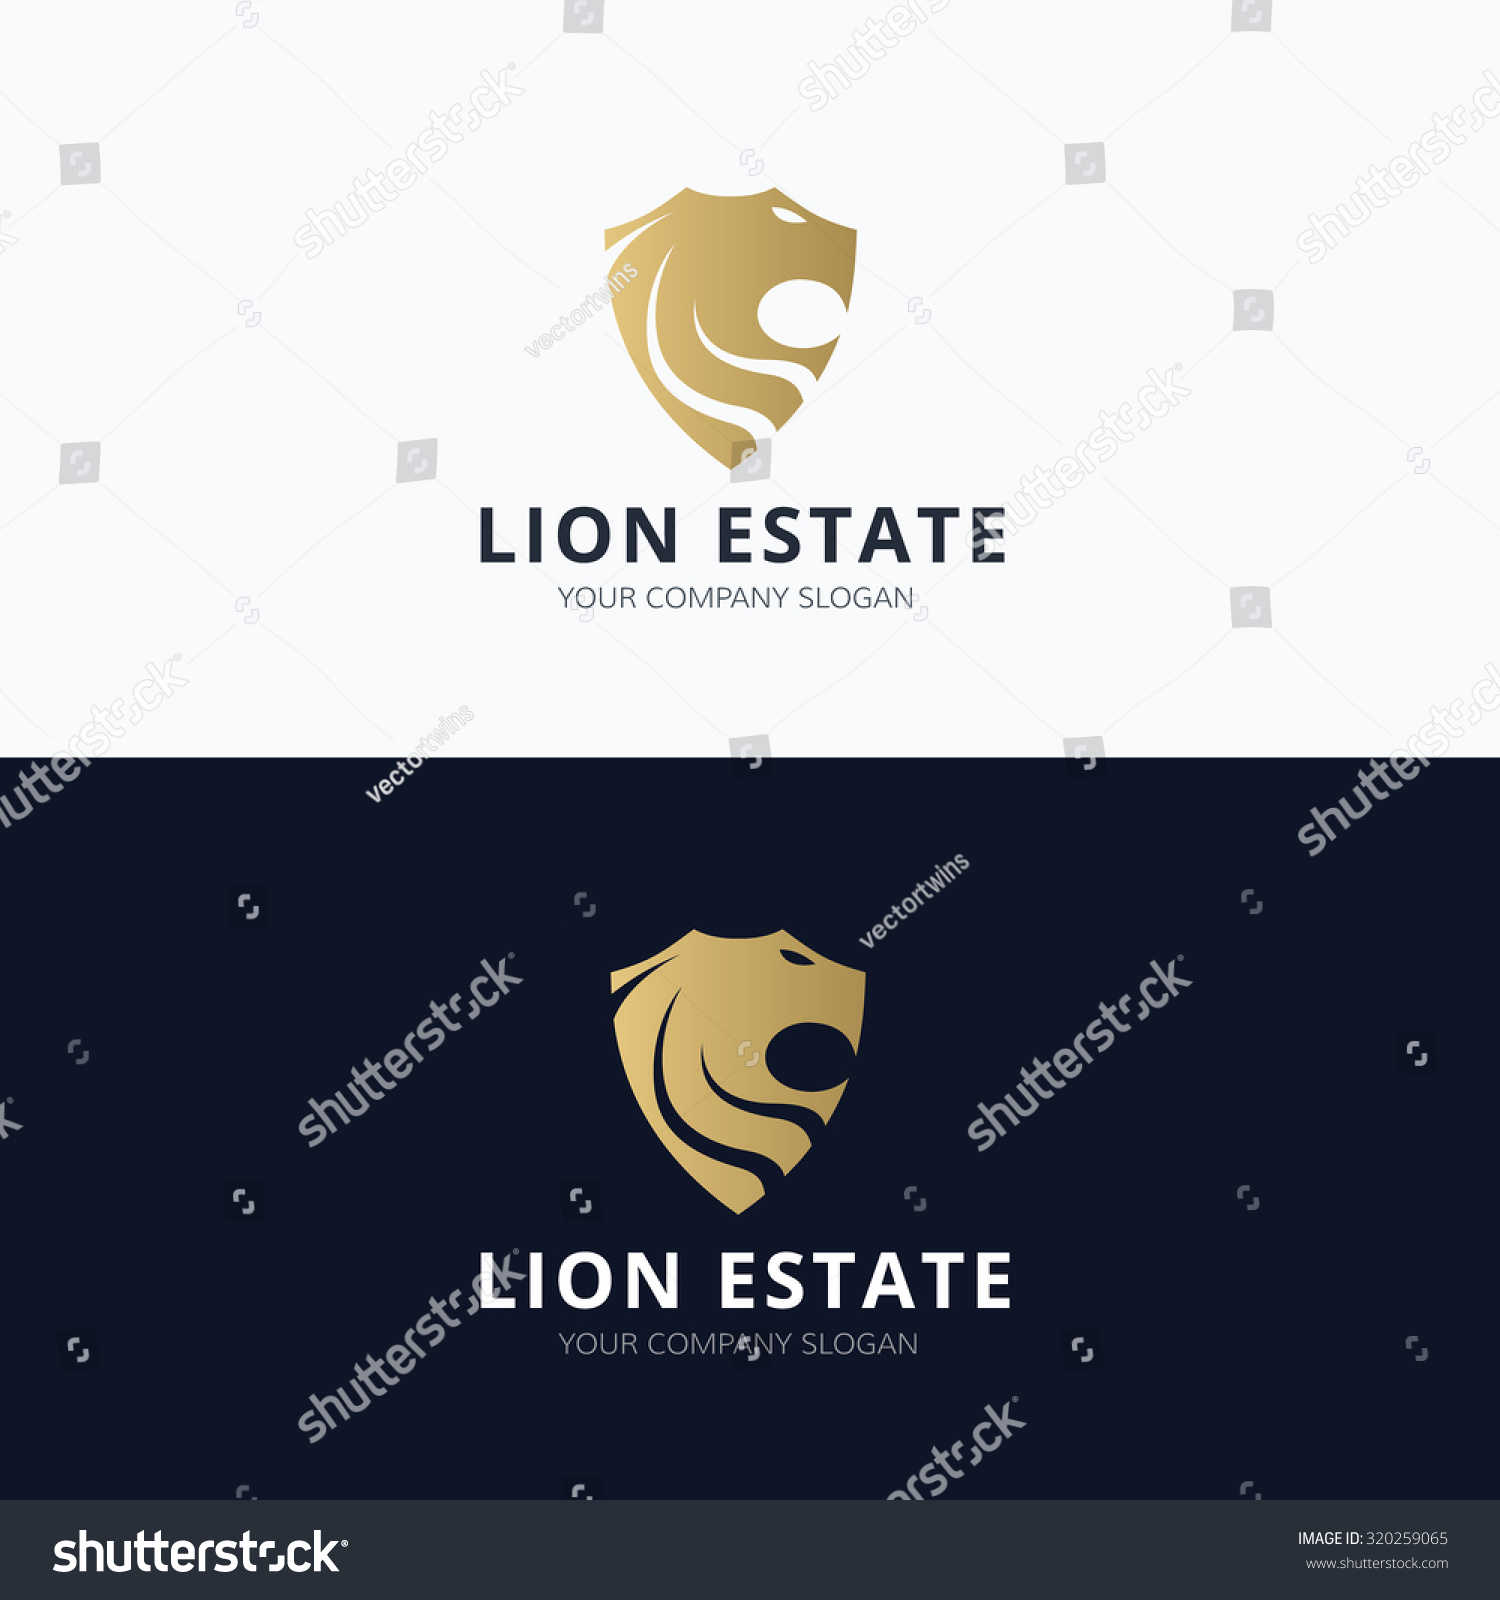 Lion Estate Real estate Logo Lion logo Vector logo template